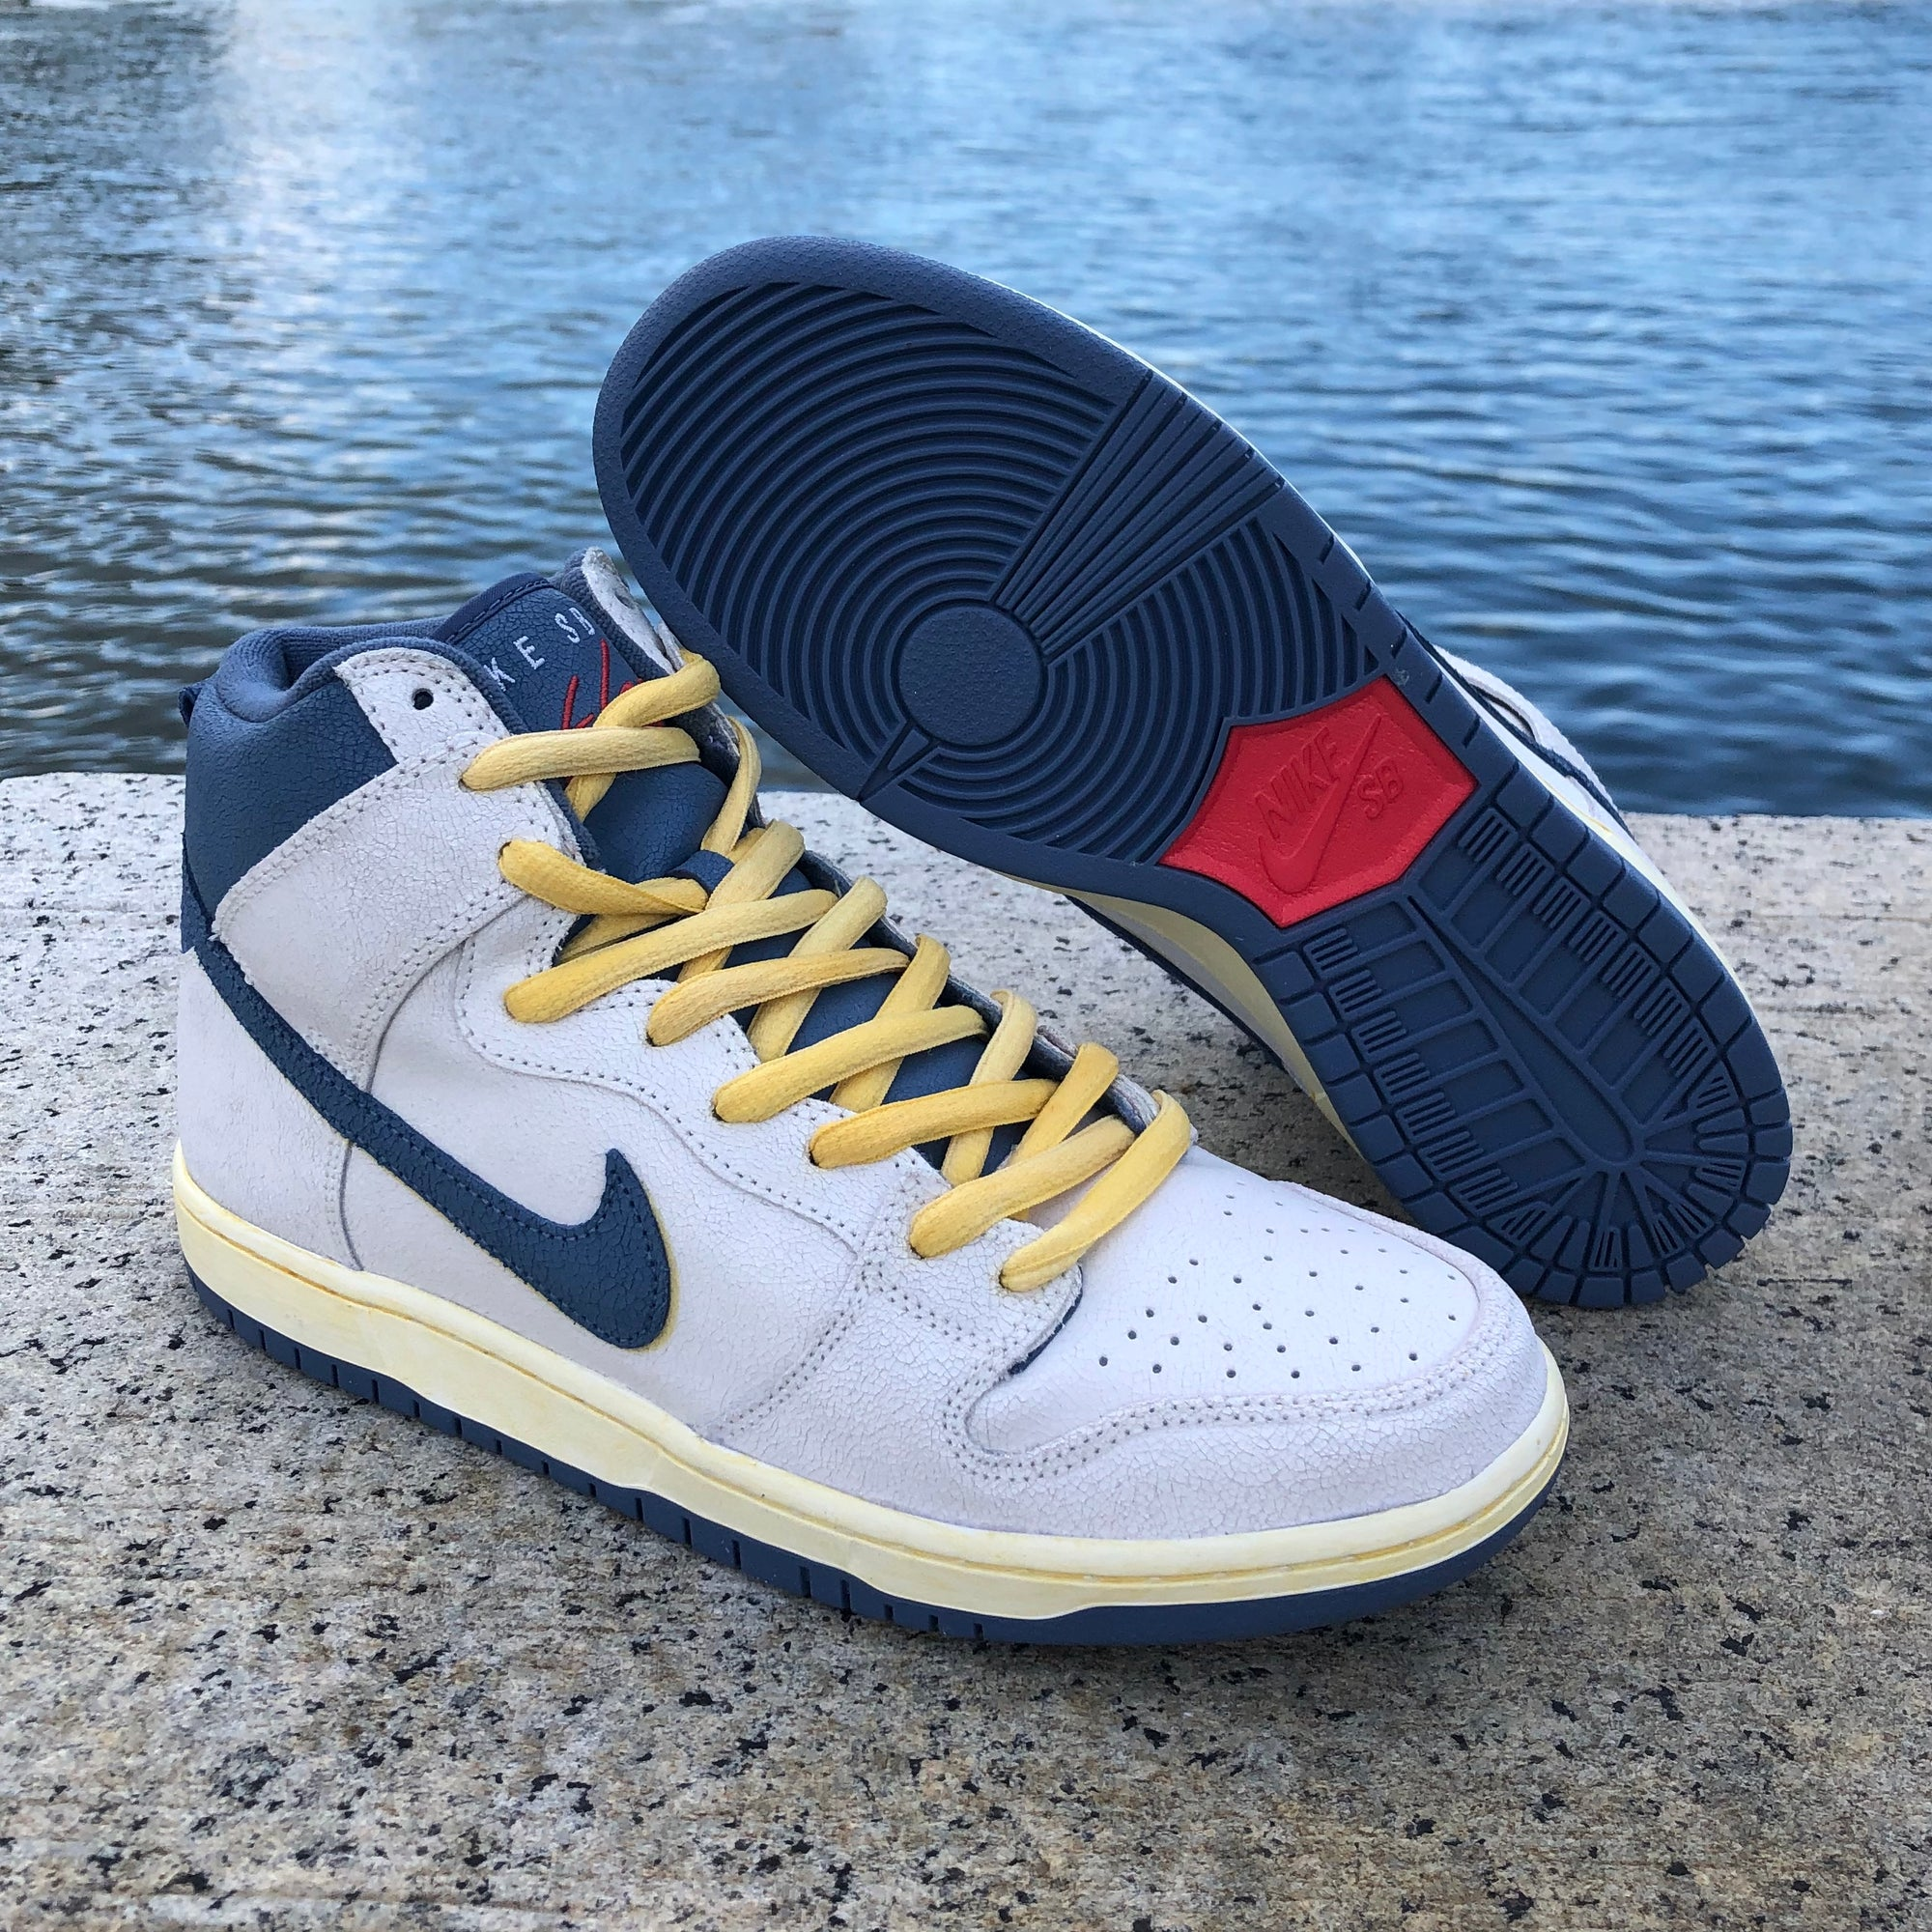 Nike SB x Atlas Skateshop - Lost At Sea Dunk High Raffle